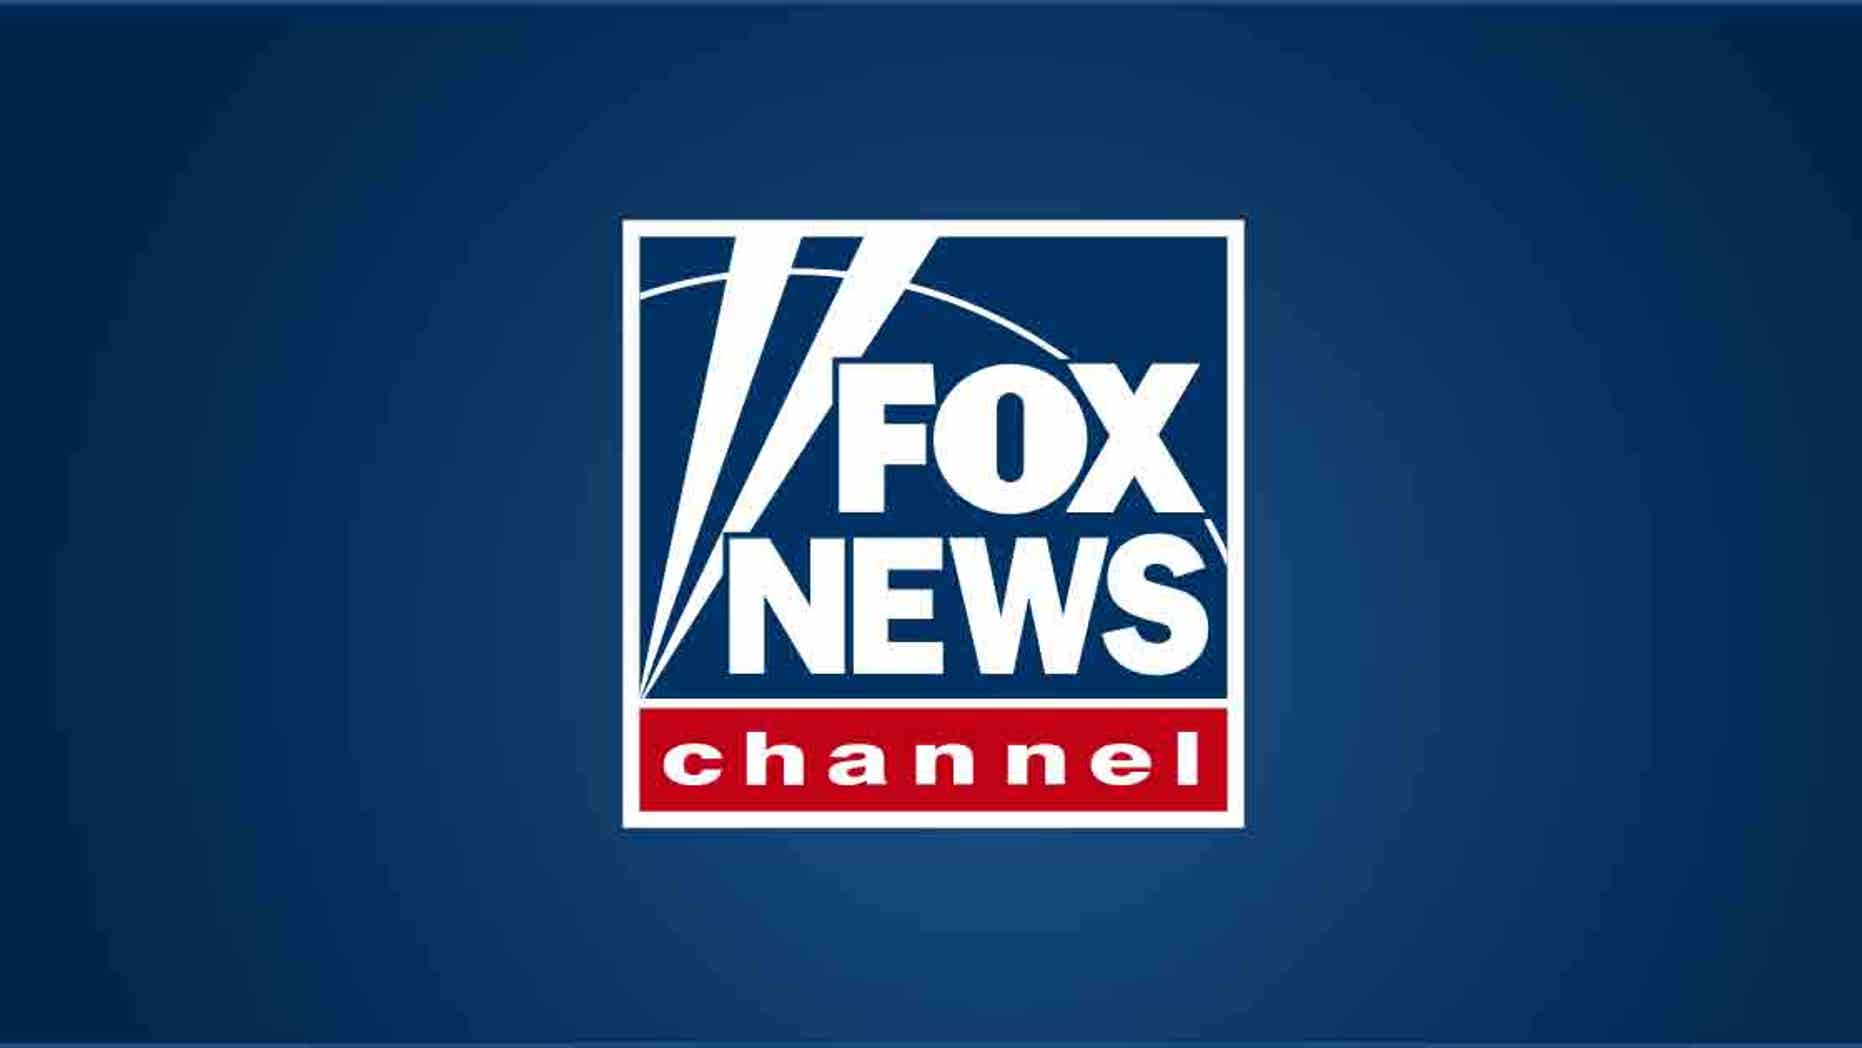 Westlake Legal Group fox-news-channel-logo Today on Fox News: Jan. 28, 2020 fox-news/media fox-news/entertainment/media fox news fnc/media fnc ec1df8b6-030c-582e-ba87-fbf6737ccbcf article